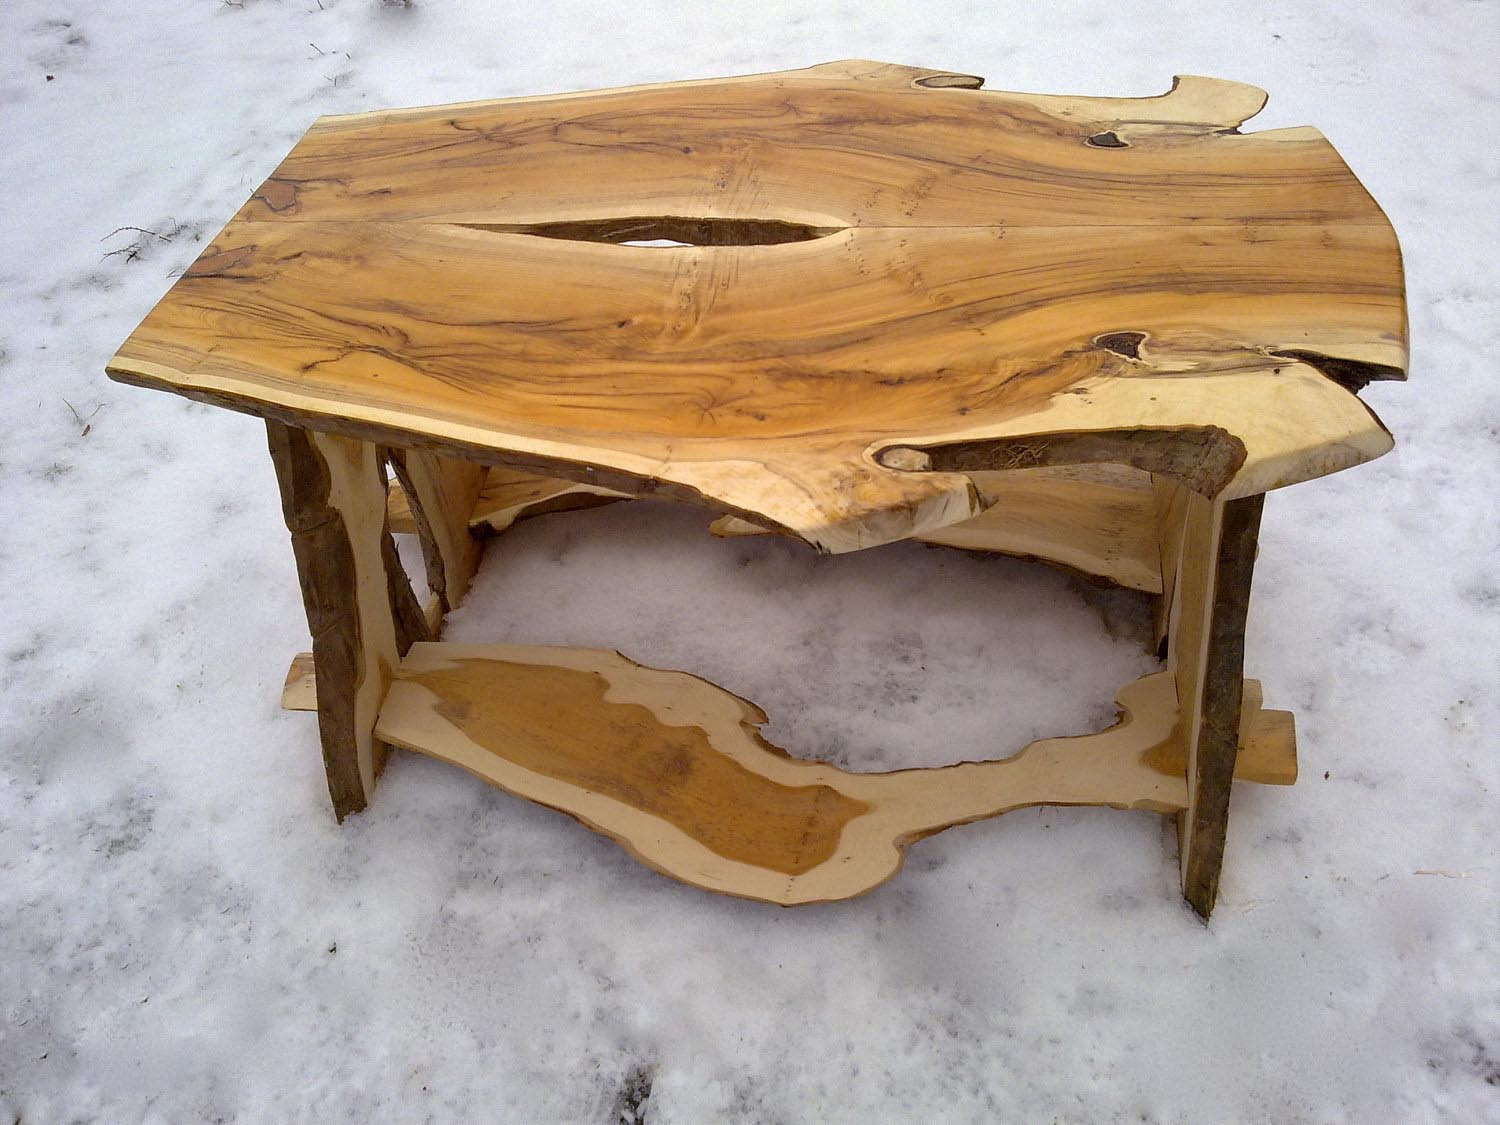 Unusual Wooden Chairs Unique Coffee Table Is Victory Over The Boring Interior